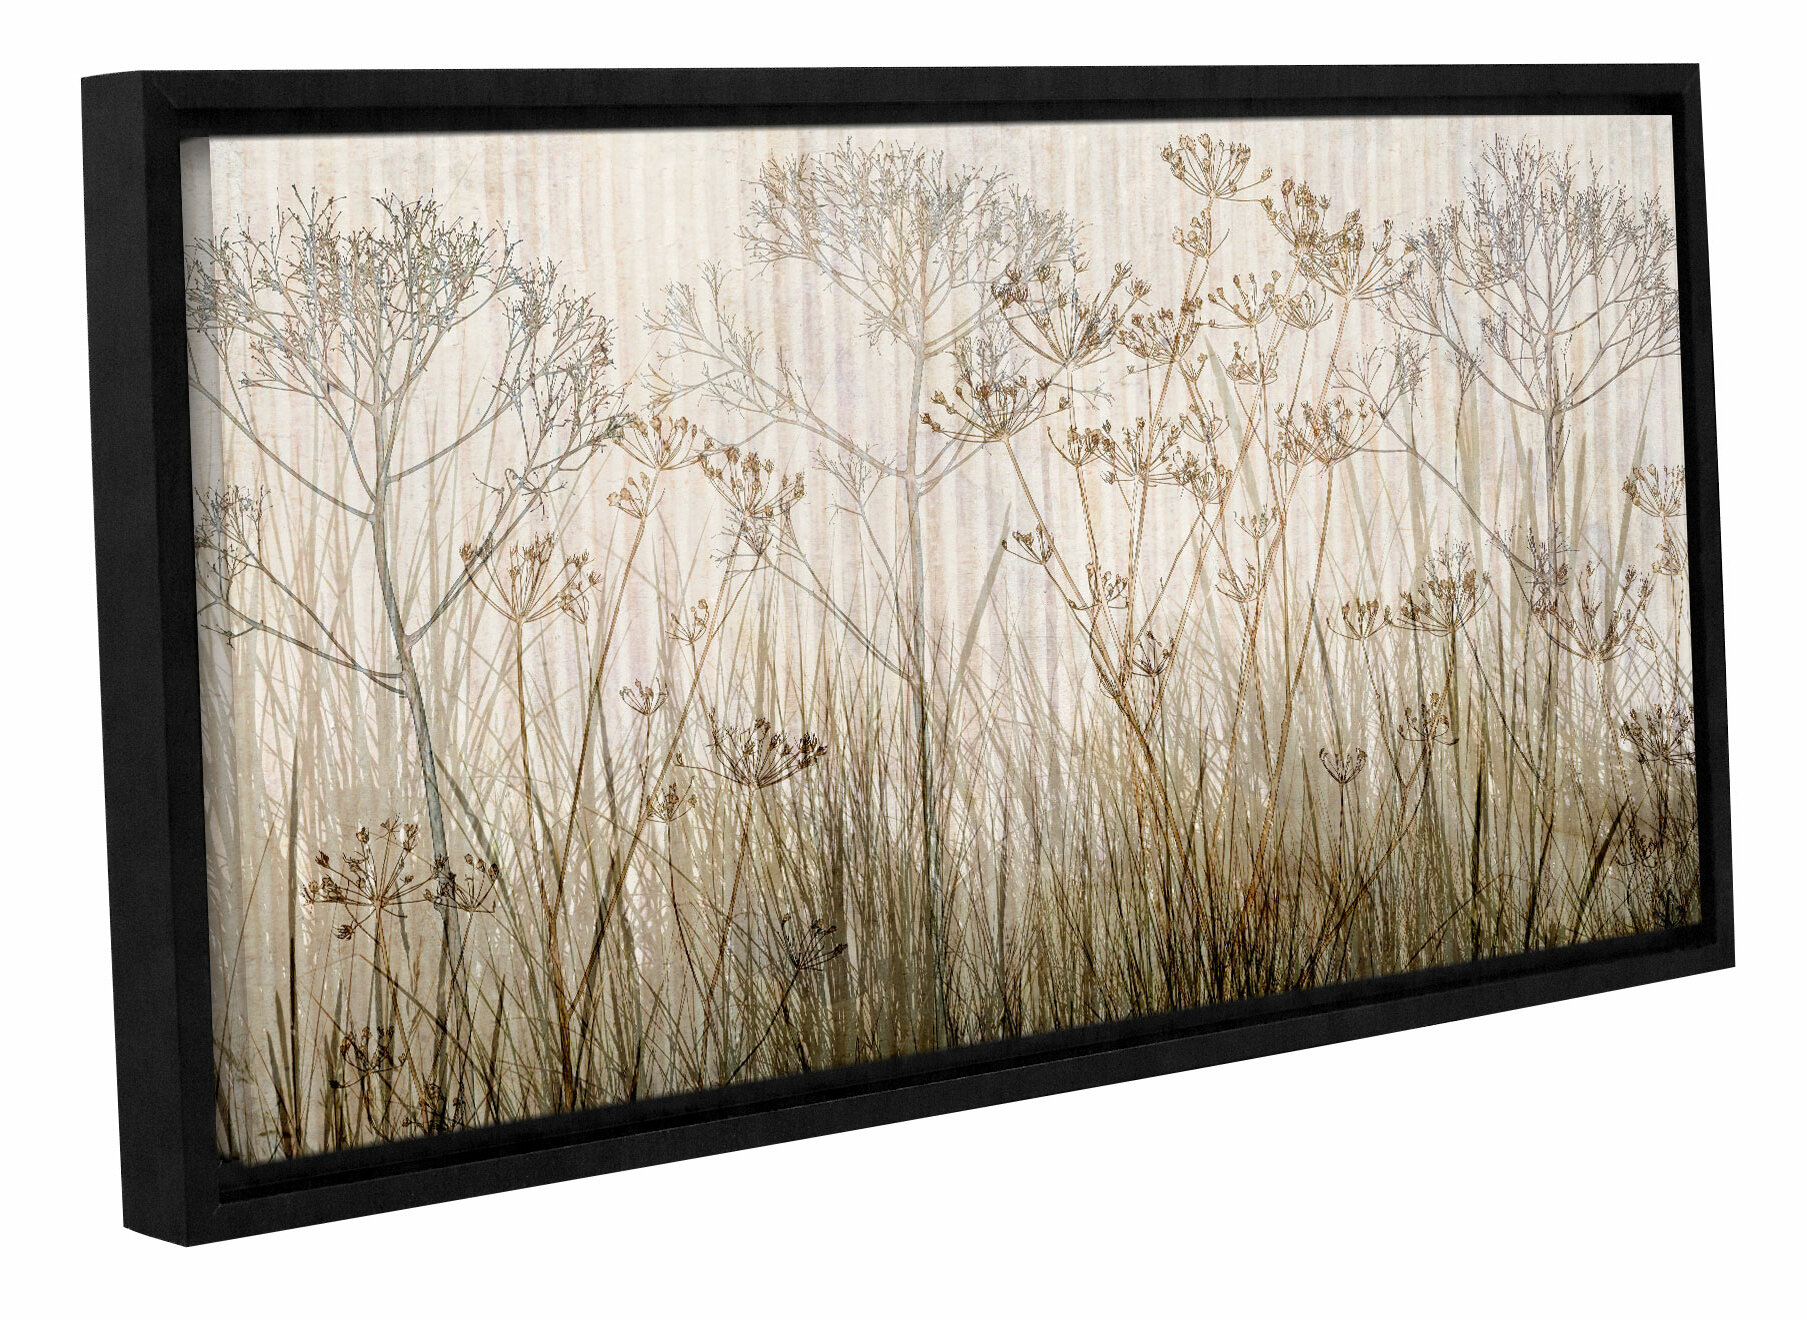 Artwall wayfair wildflowers mutli colored by cora niele framed graphic art on canvas jeuxipadfo Images